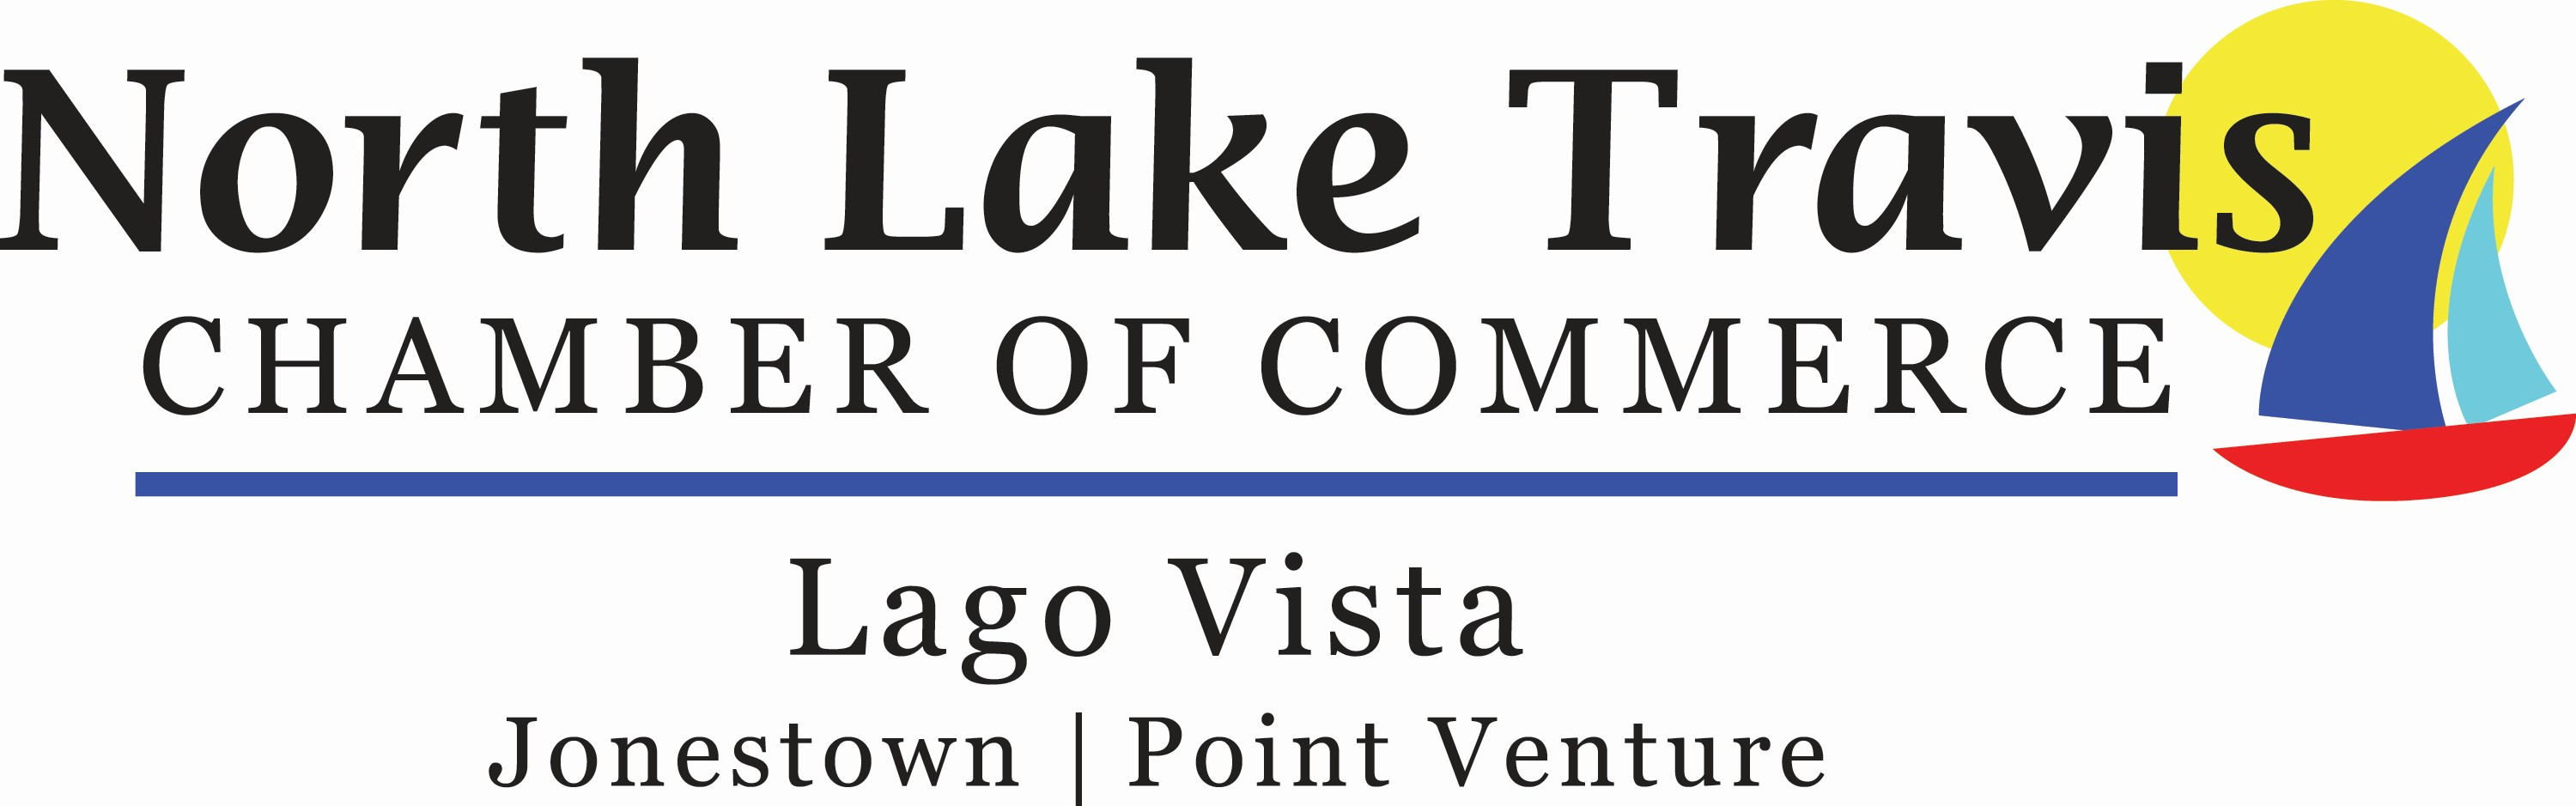 North Lake Traivs Chamber of Commerce